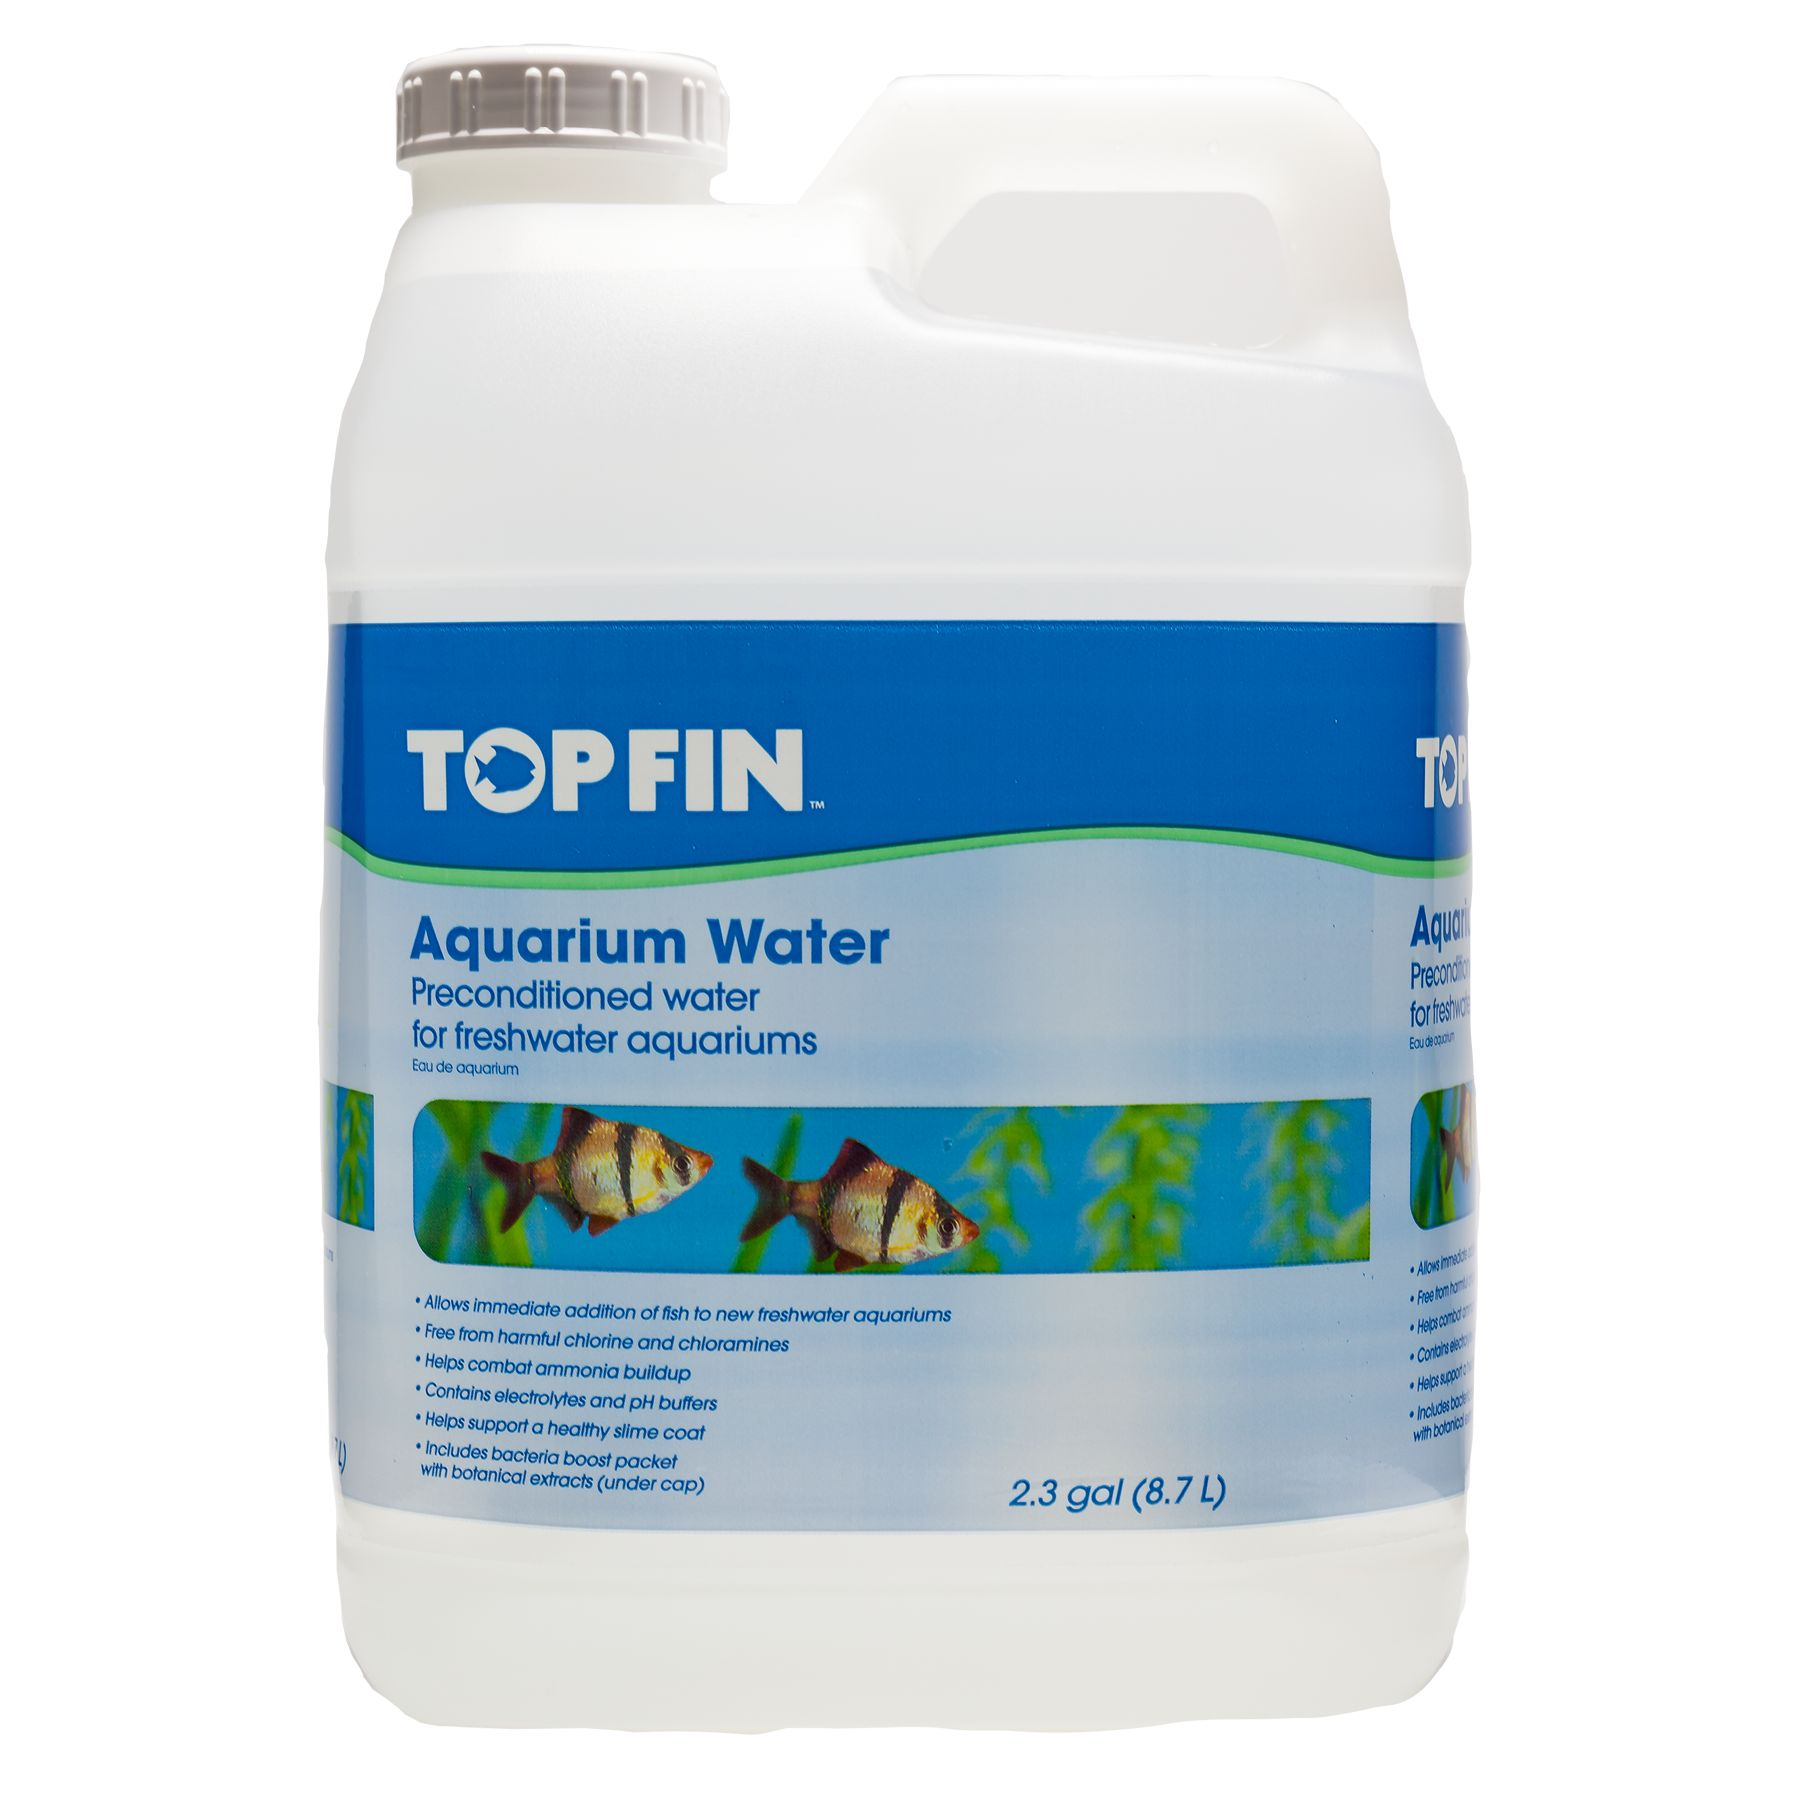 Top Fin Ready Water Preconditioned Aquarium Cycling Water Conditioner Size 2.3 Gal